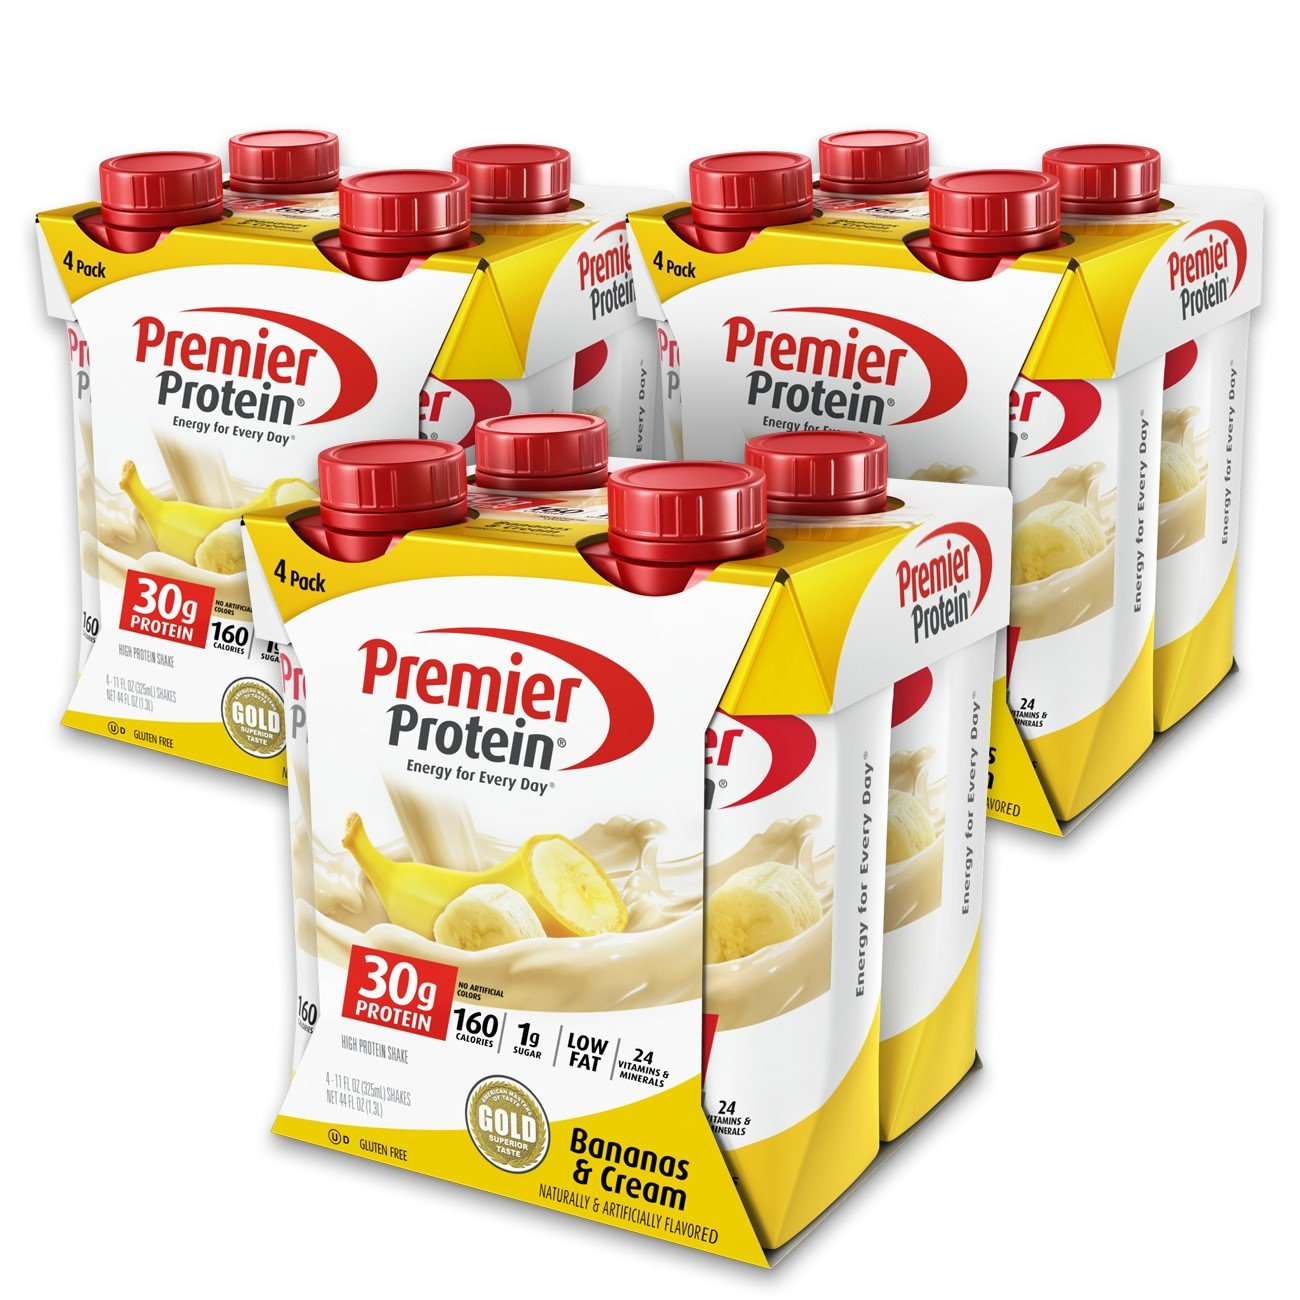 Premier Protein 30g Protein Shake, Banana, 12 Count